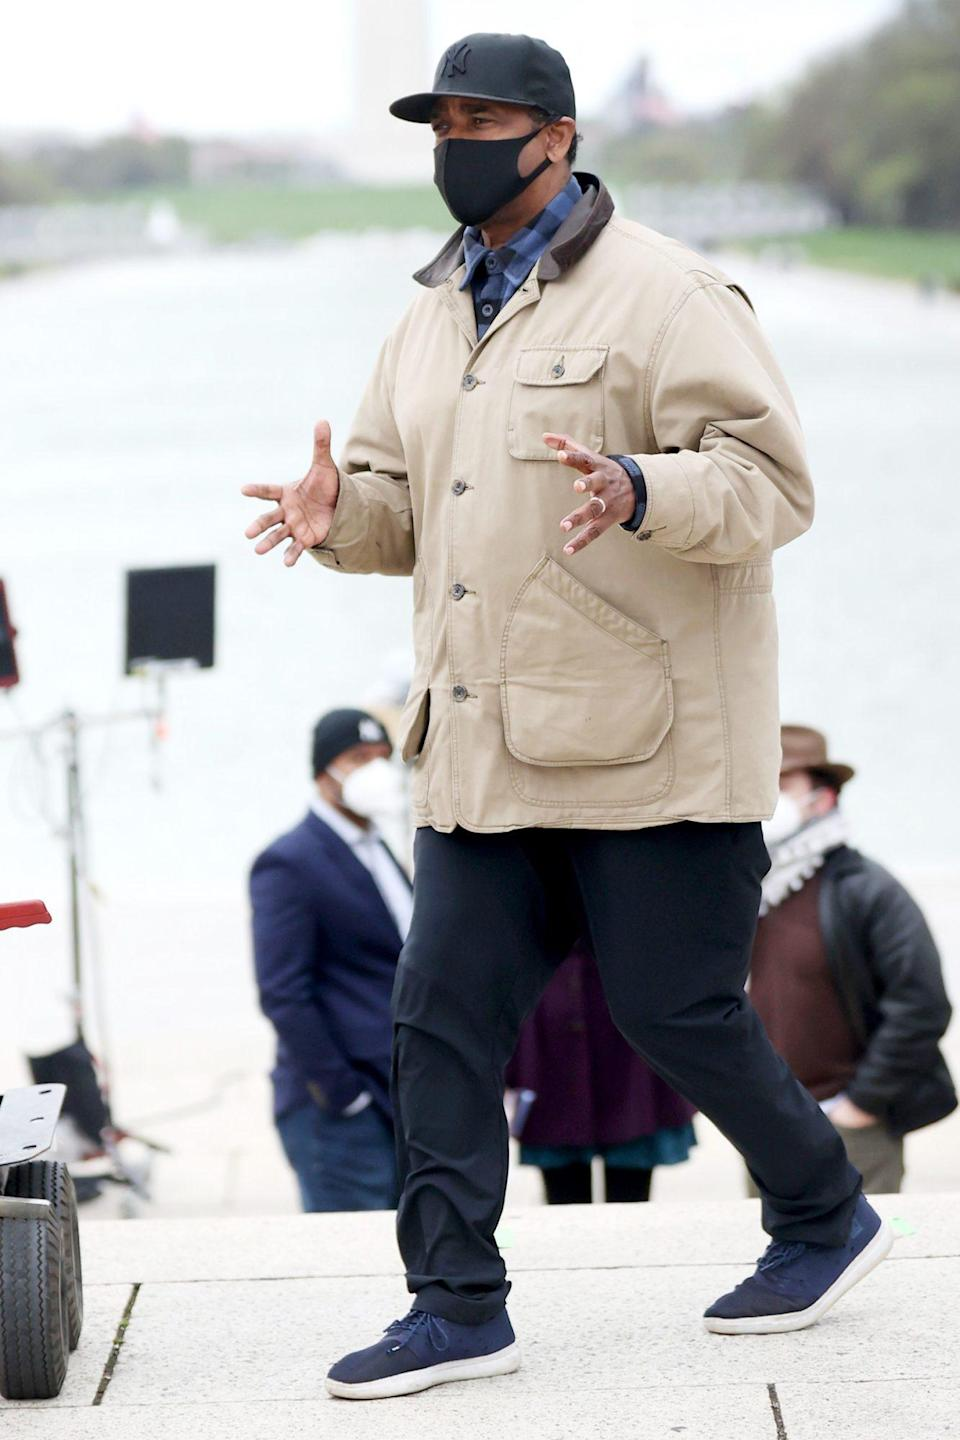 <p>Denzel Washington is seen directing his upcoming film<em> A</em> <em>Journal for Jordan</em> at the Lincoln Memorial in Washington D.C. on Thursday.</p>